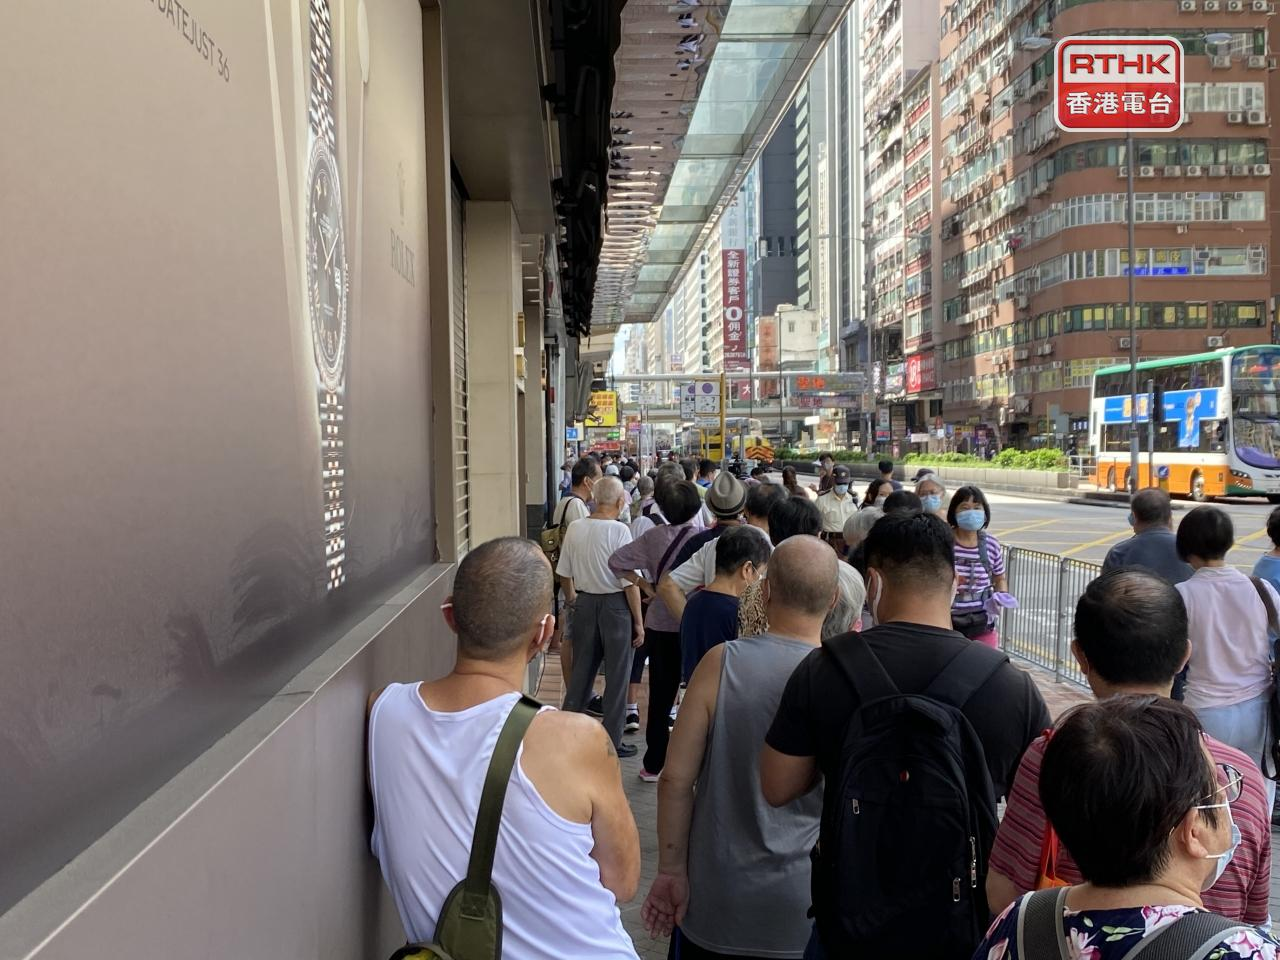 A long queue snaked along streets in Mong Kok. Photo: RTHK